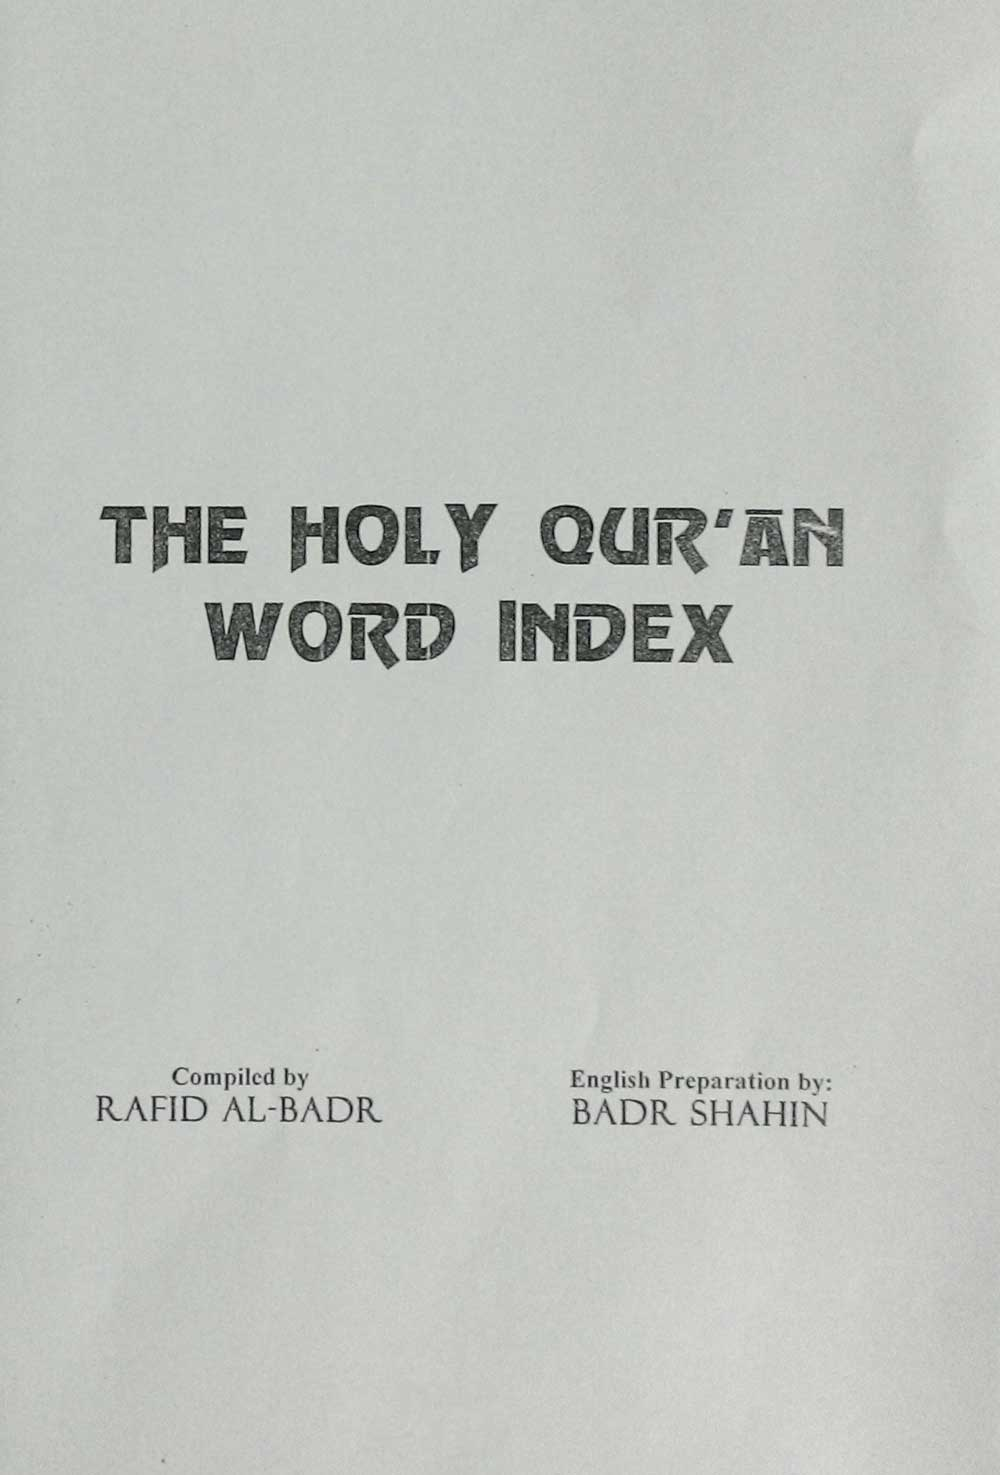 the holy quran word index